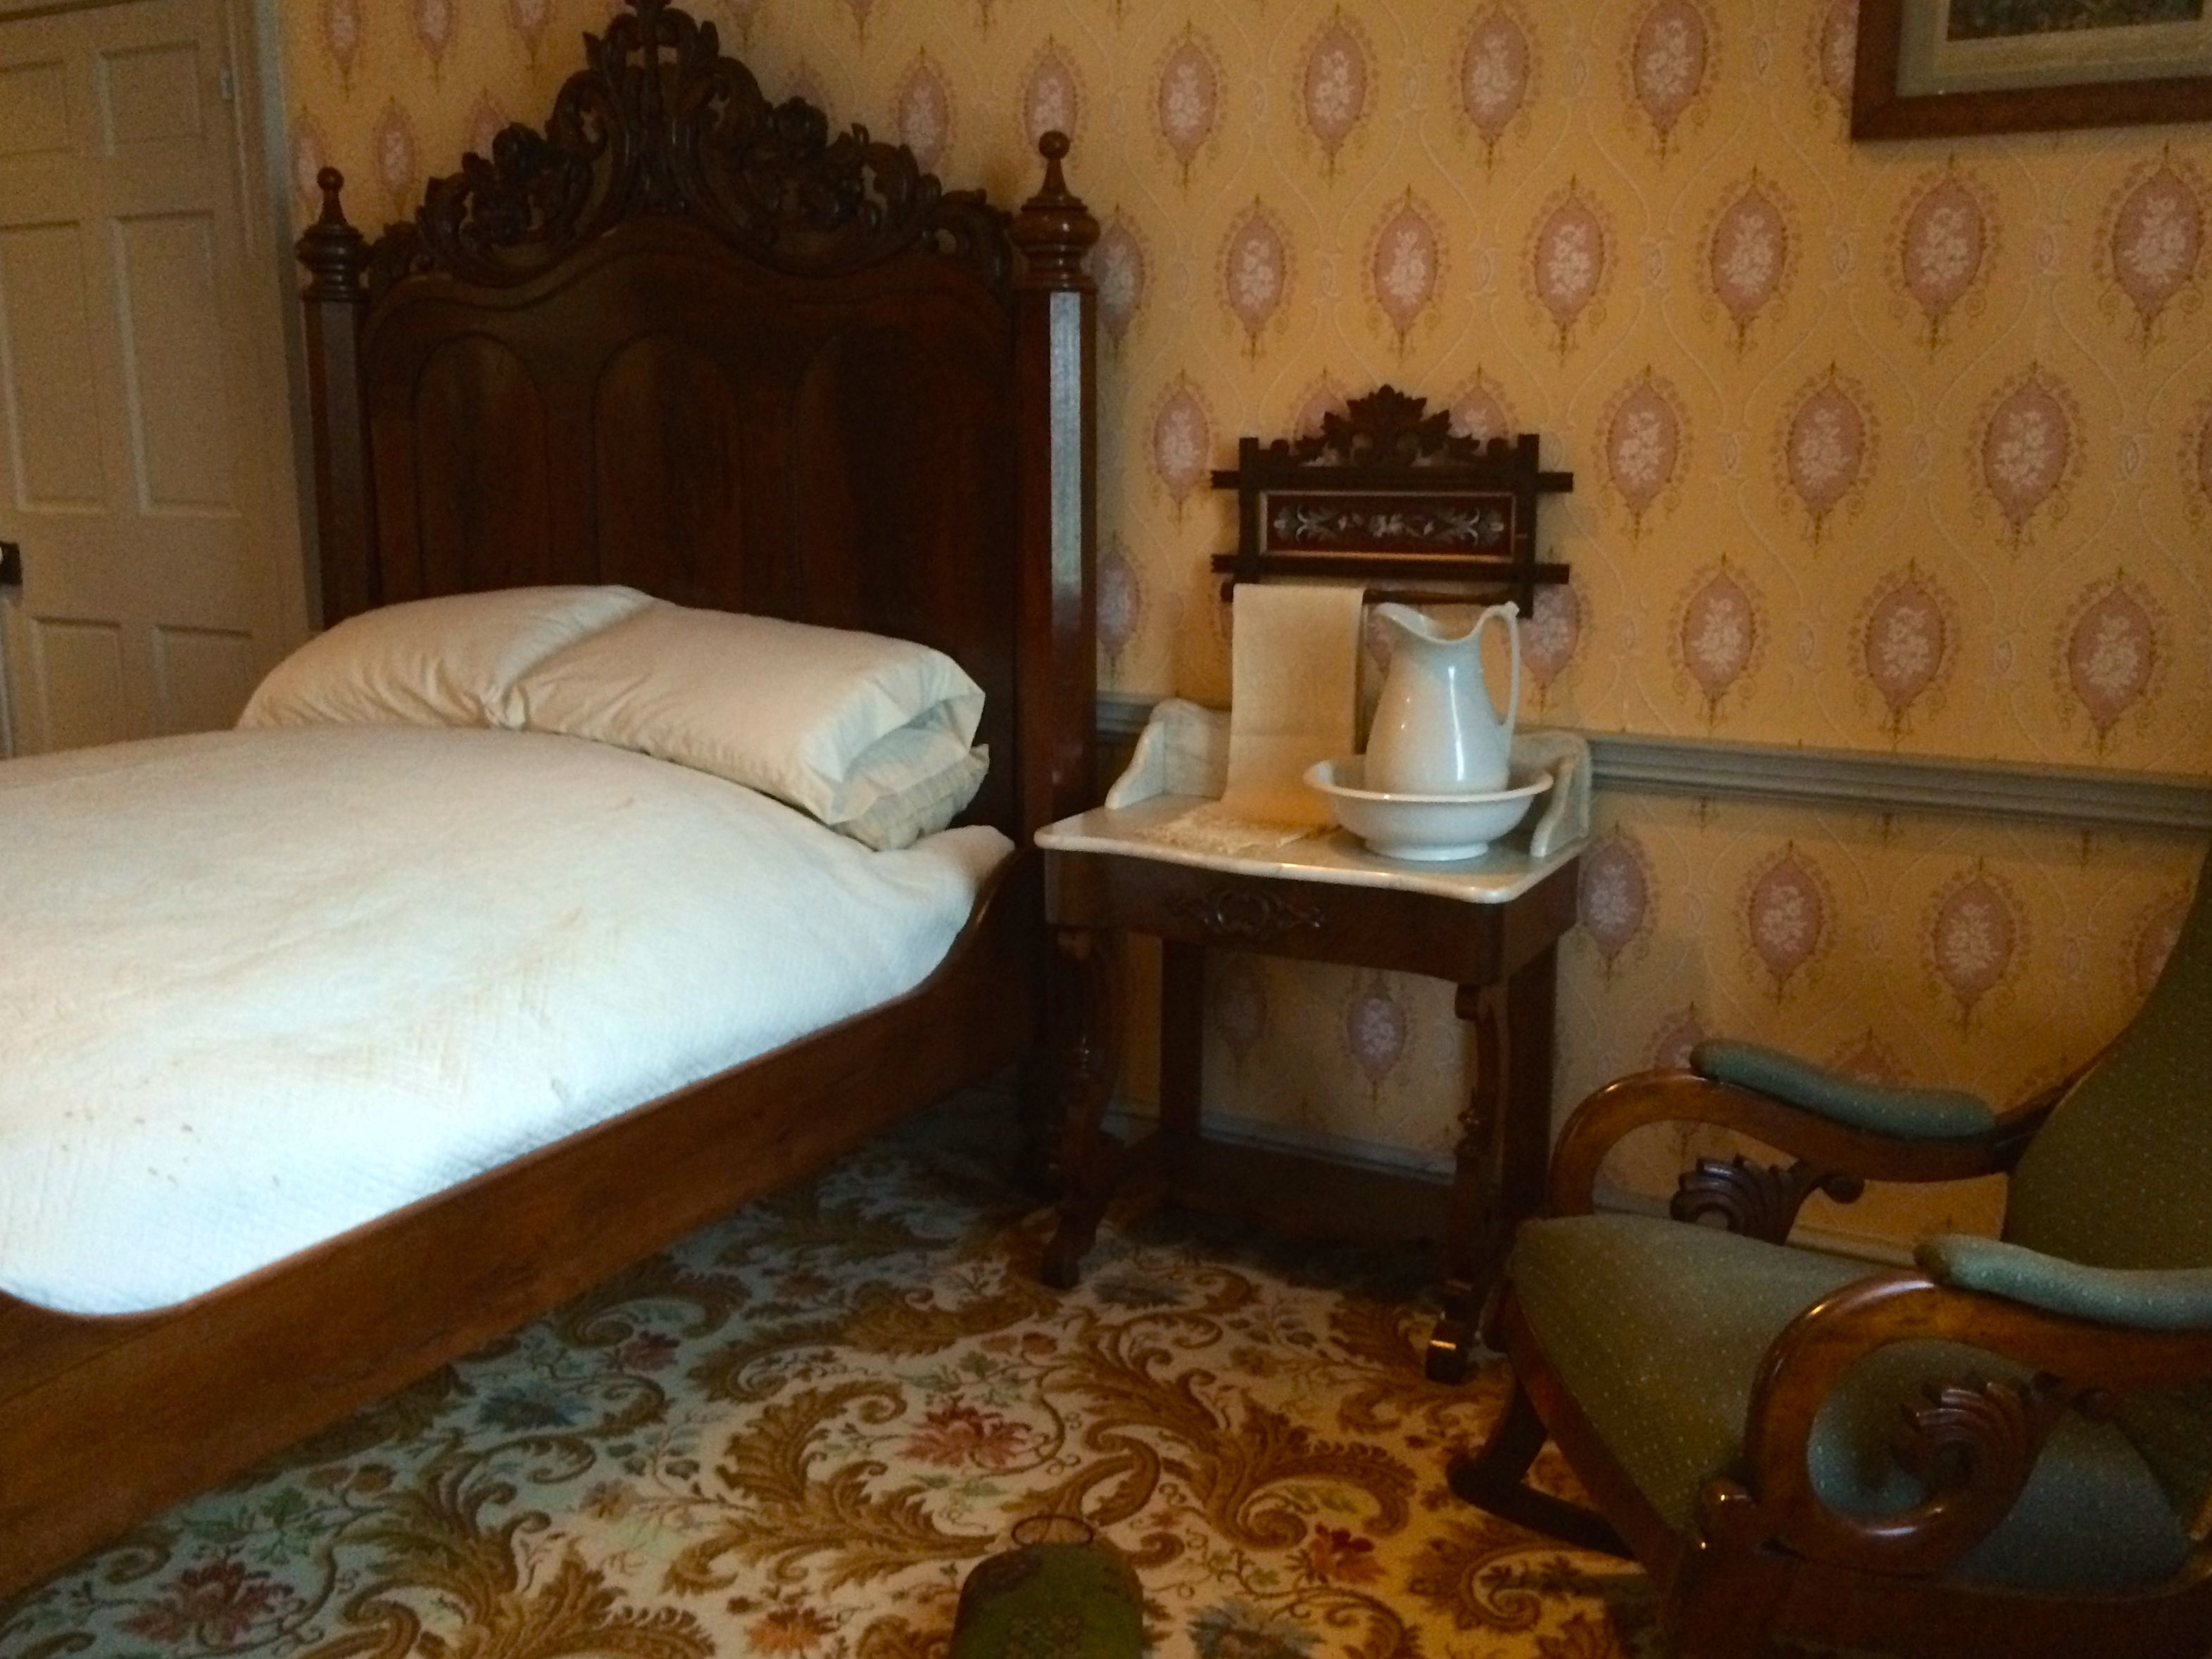 Lincoln's bedroom at the Wills house